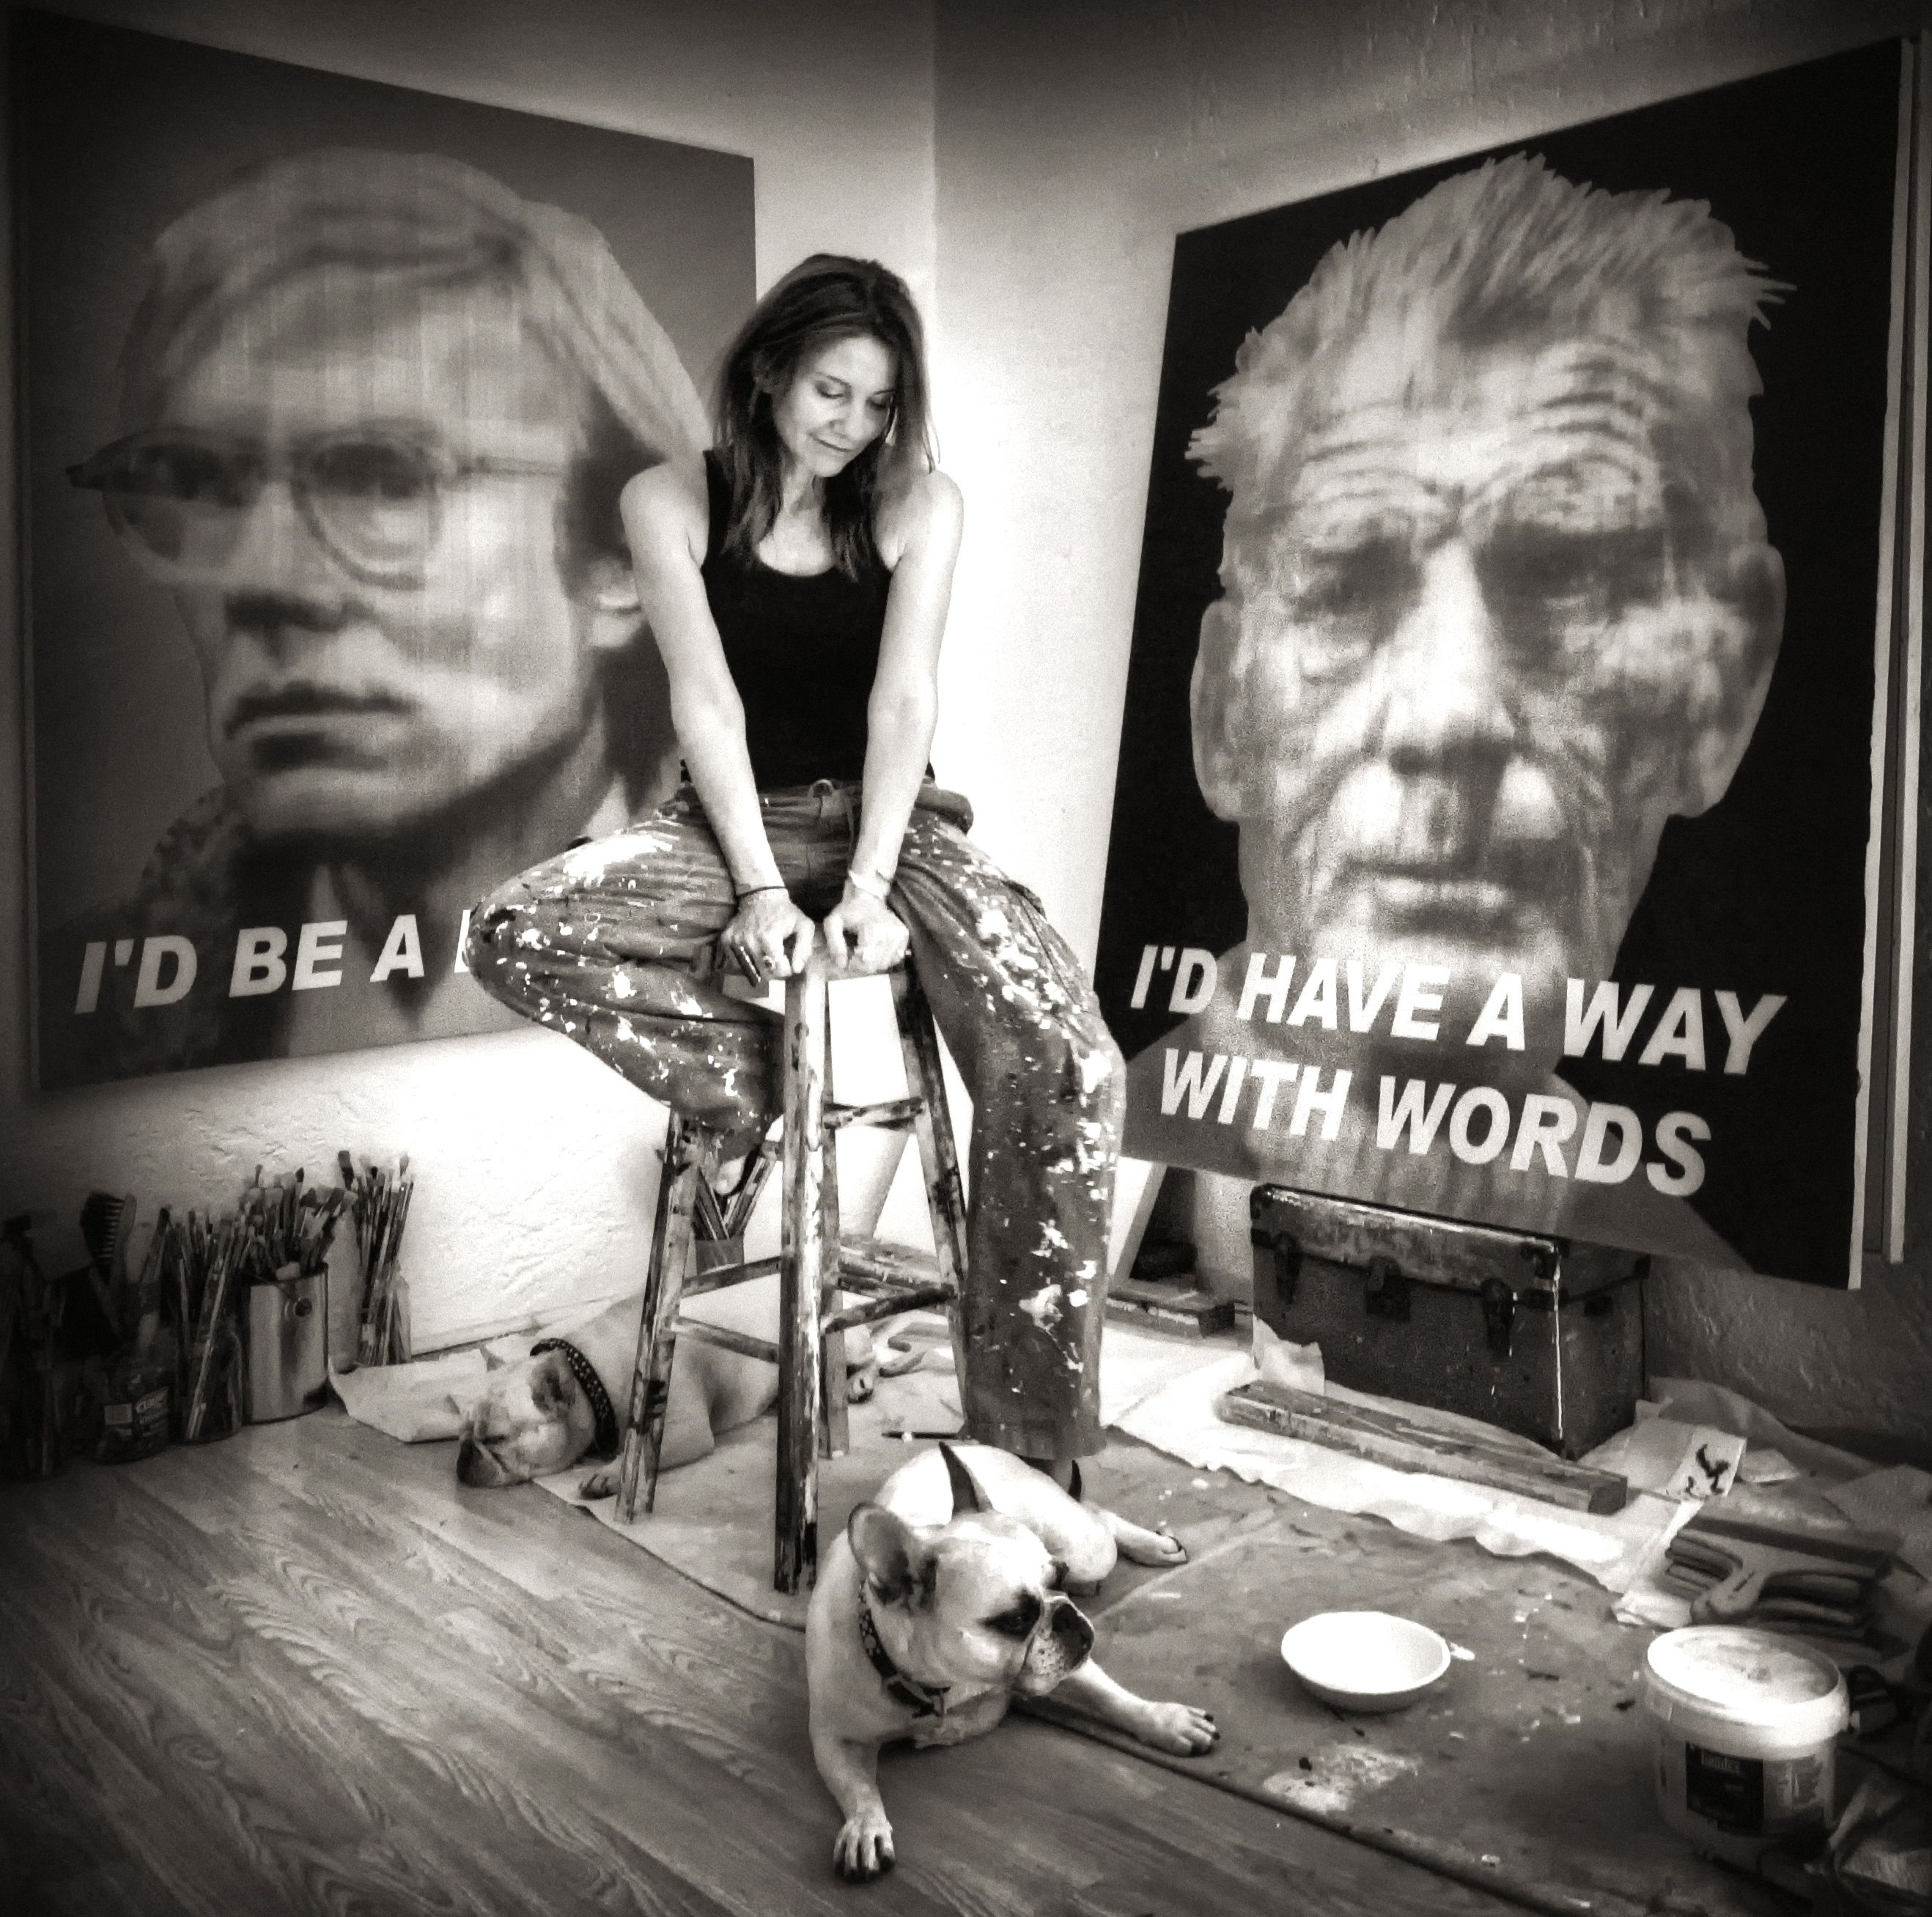 Alison Van Pelt w/Andy Warhol and Samuel Beckett, oil and acrylic on canvas, 5ft x 4ft